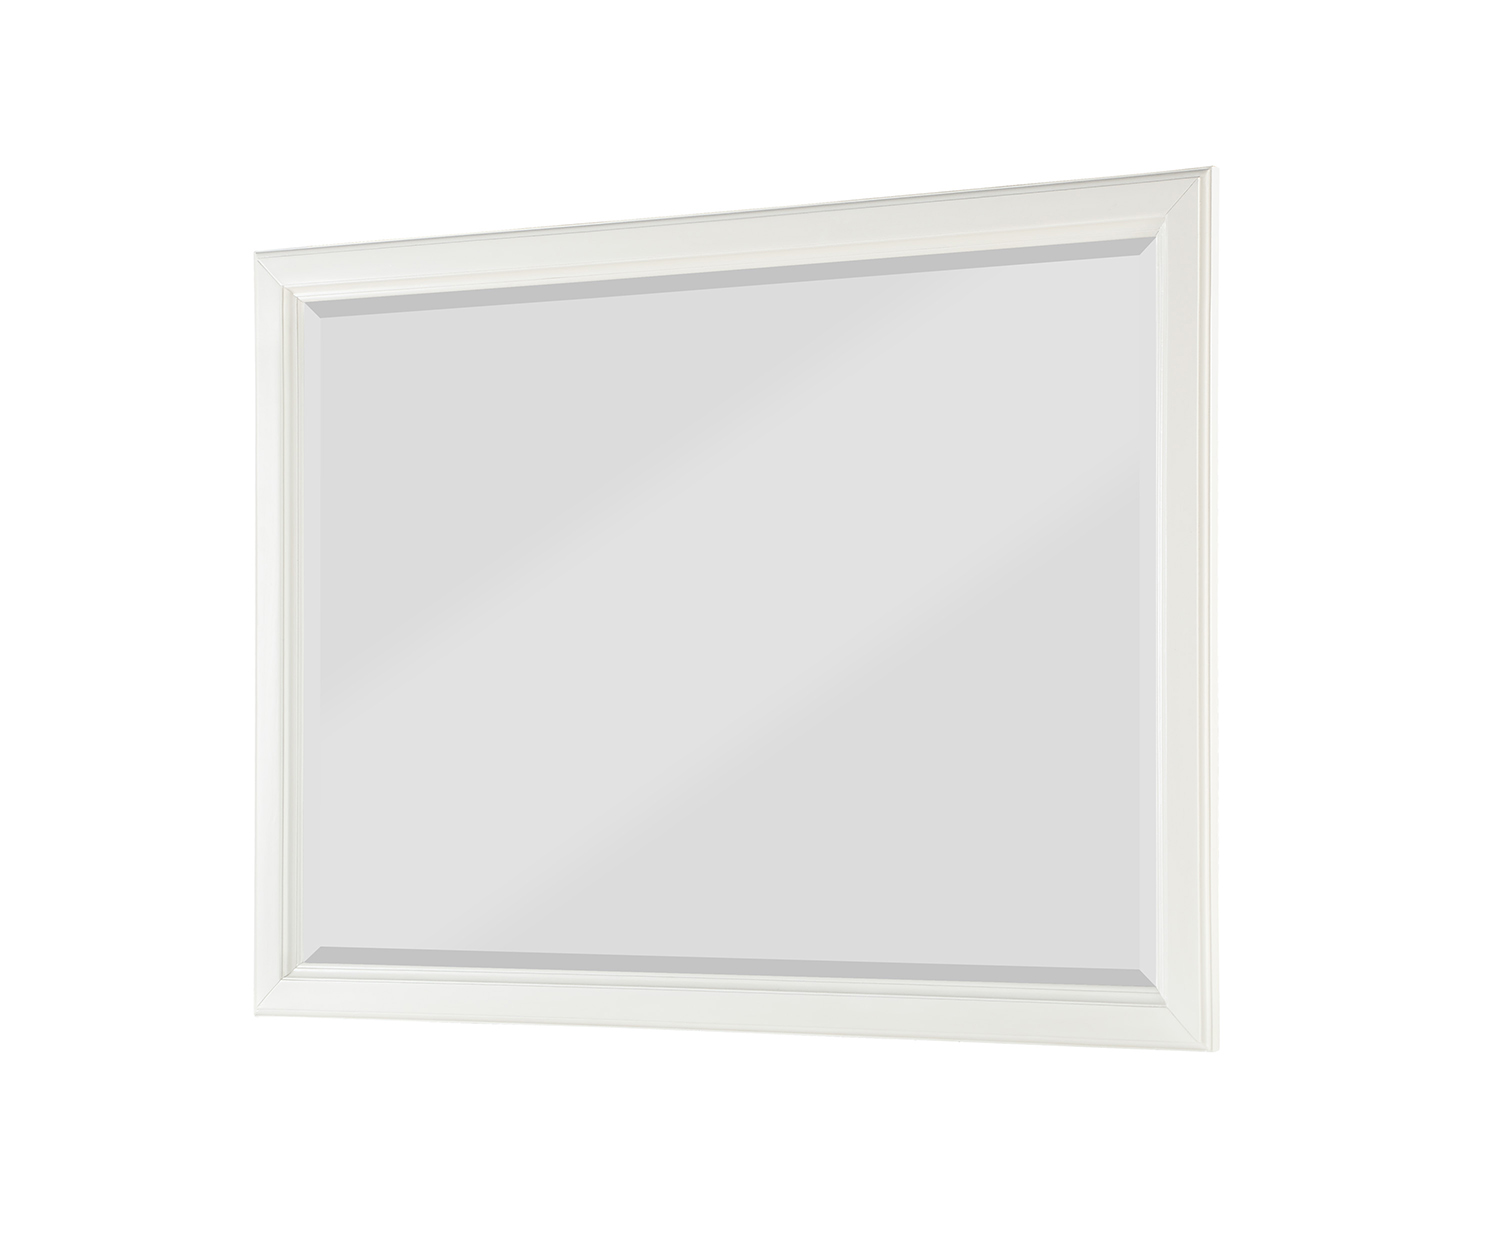 Homelegance Cotterill Mirror - White Finish over Birch Veneer